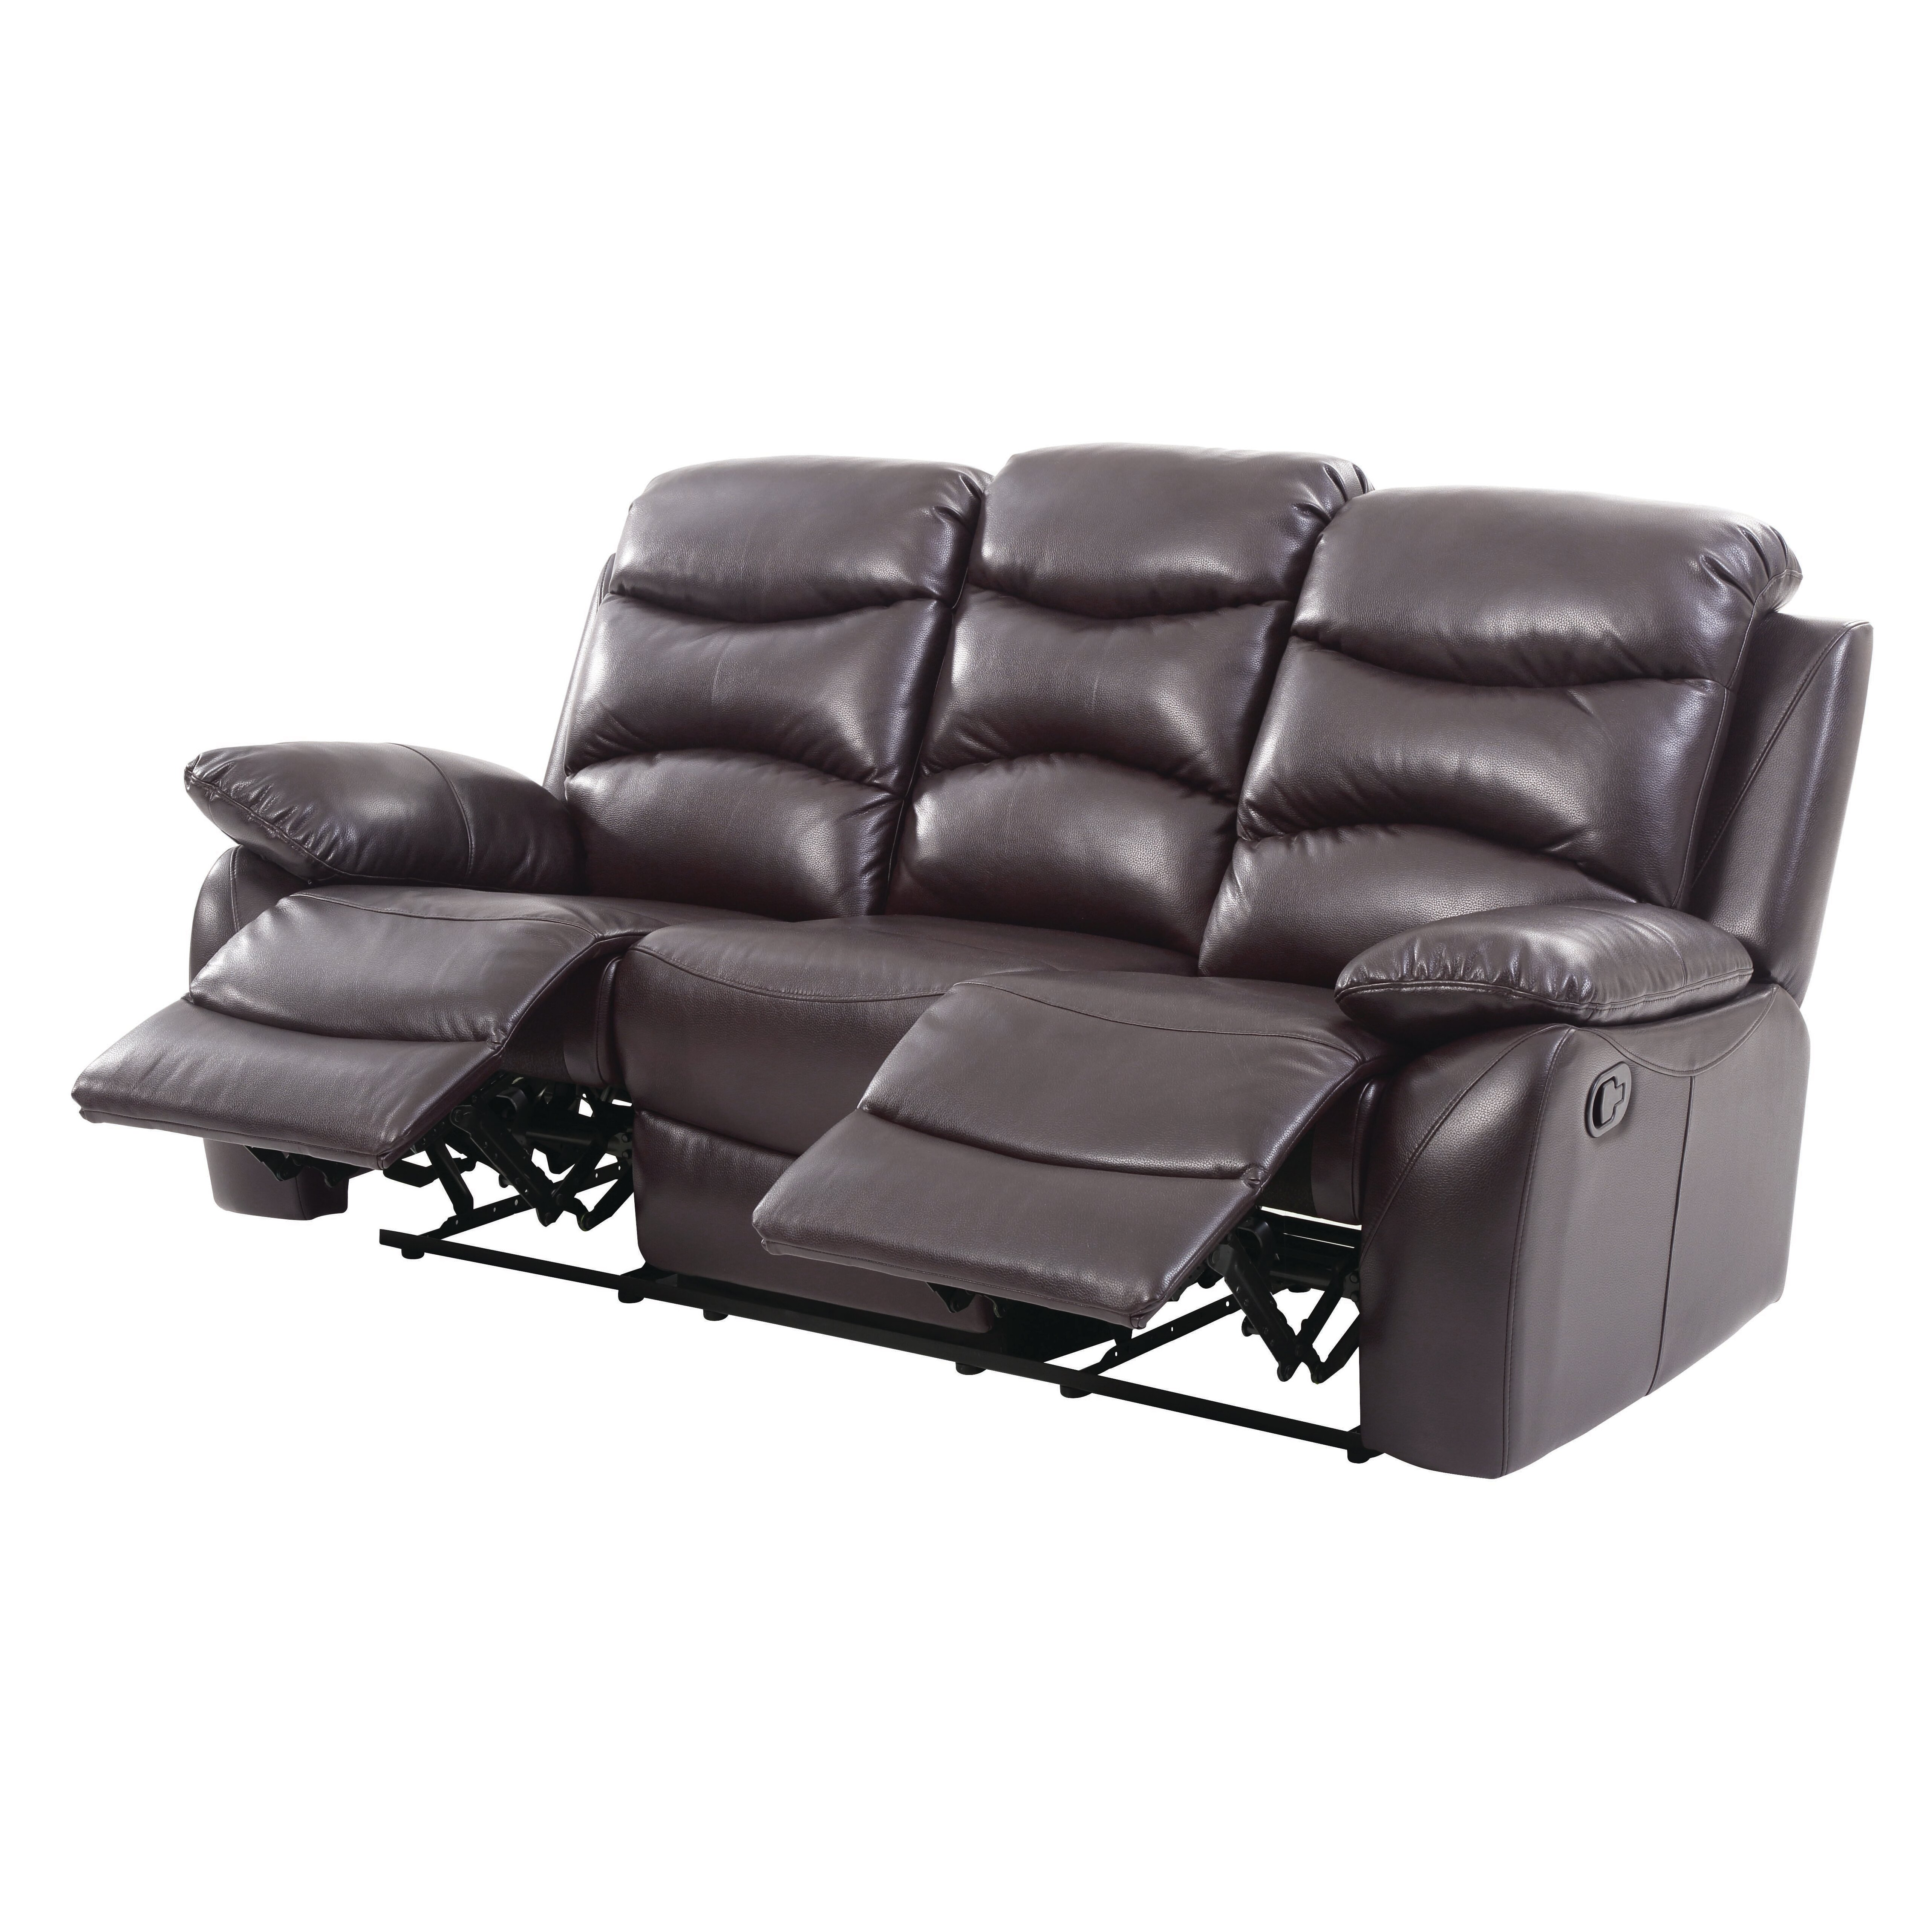 Glory furniture mansfield double reclining leather sofa for Double leather sofa